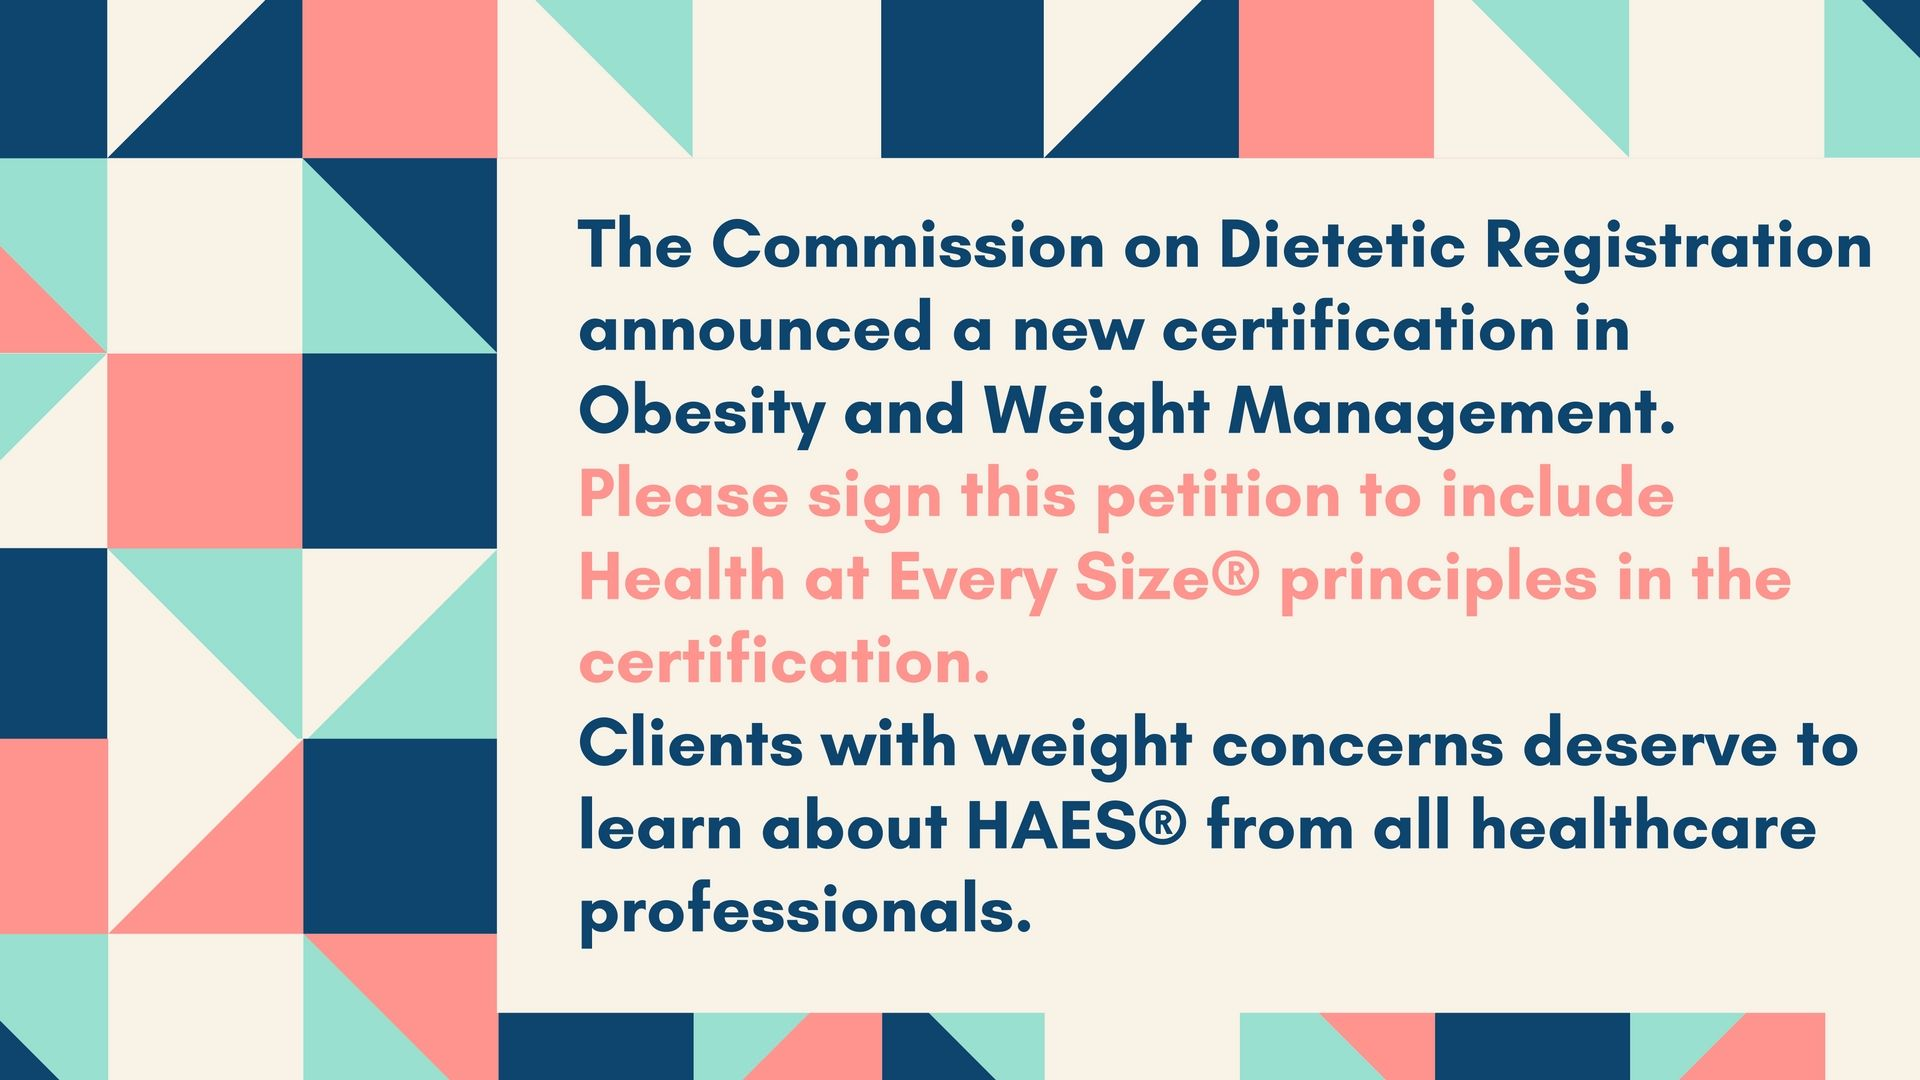 My Response To The Cdr About The New Weight Management